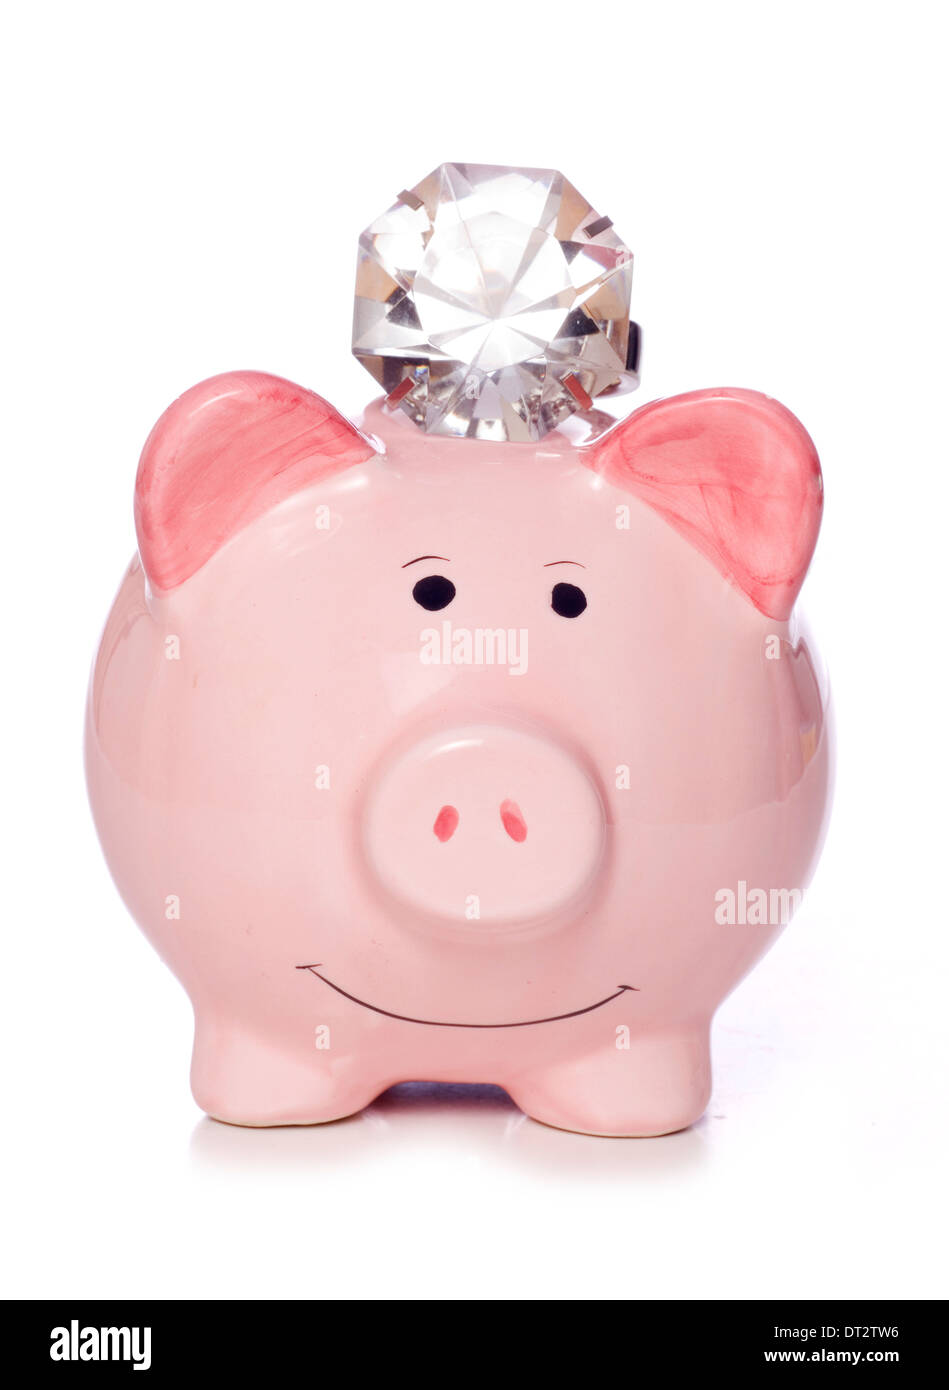 Wealthy saving piggy bank with diamonds cutout - Stock Image